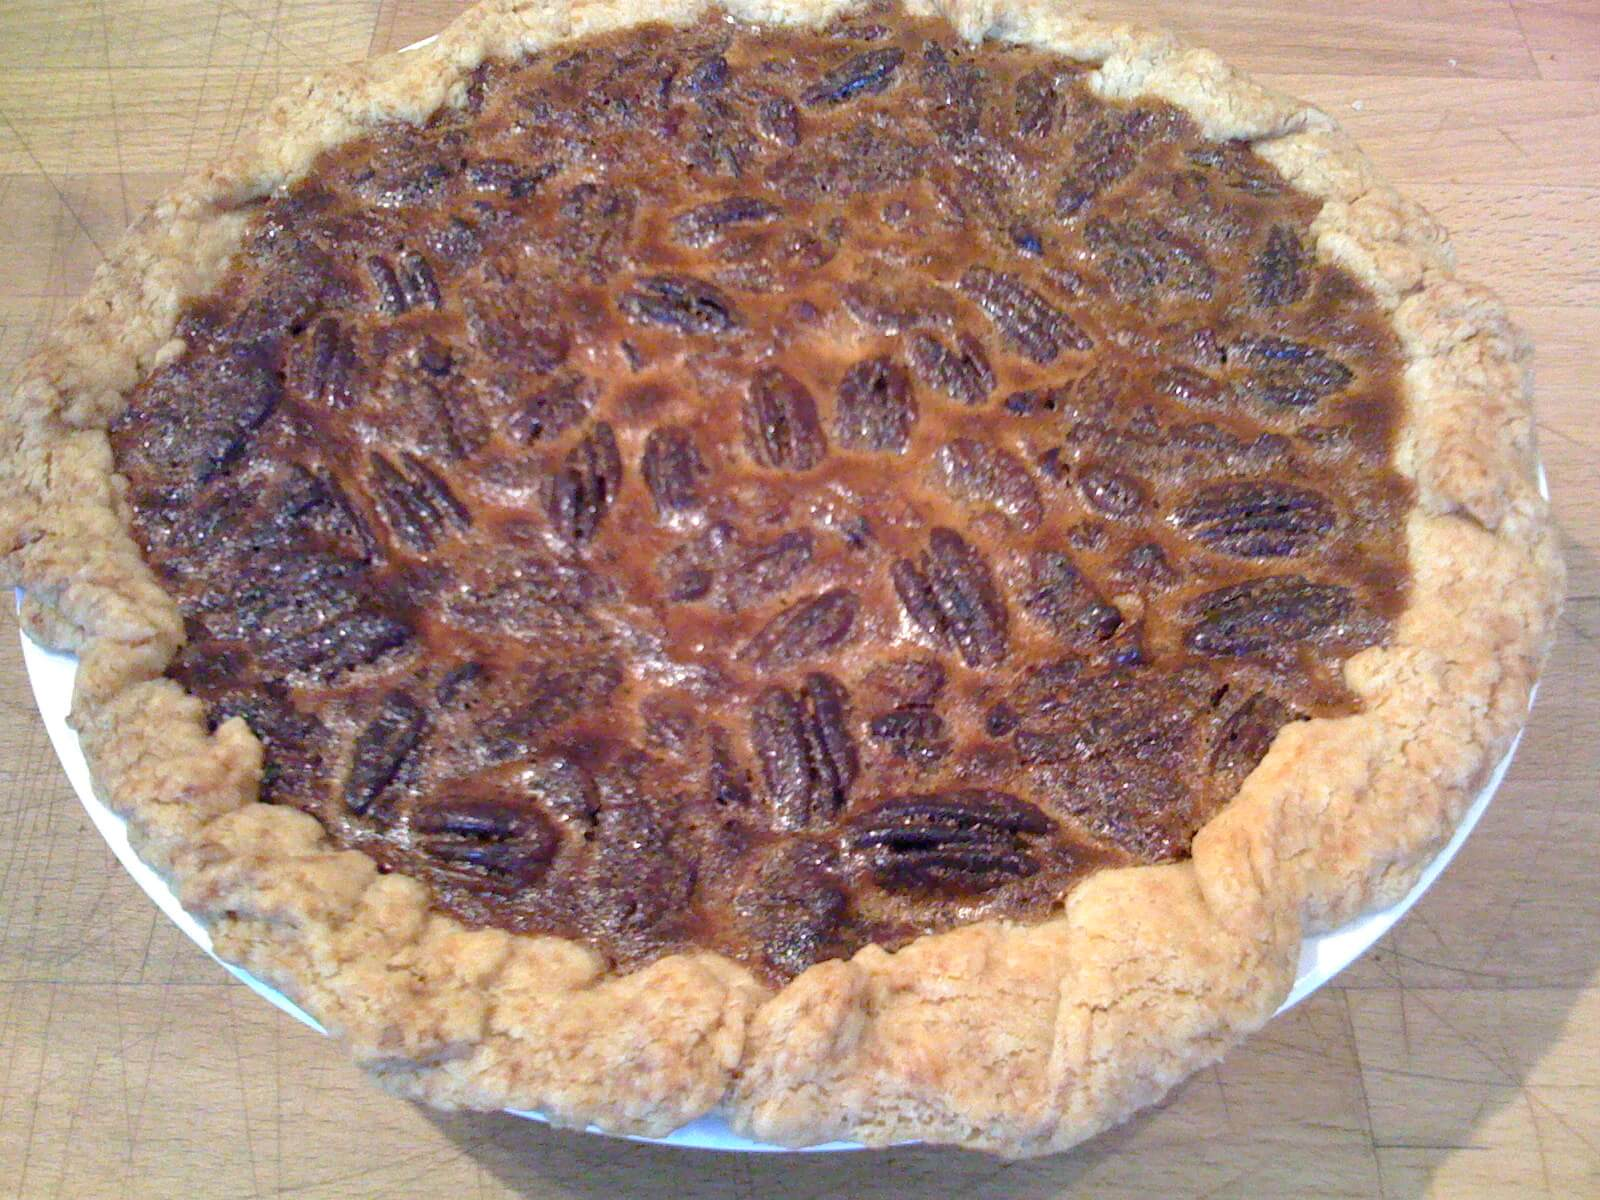 Pecan Pies in London, pecan pie, pecan pie recipes, bakery in london, bakeries in london, london bakery